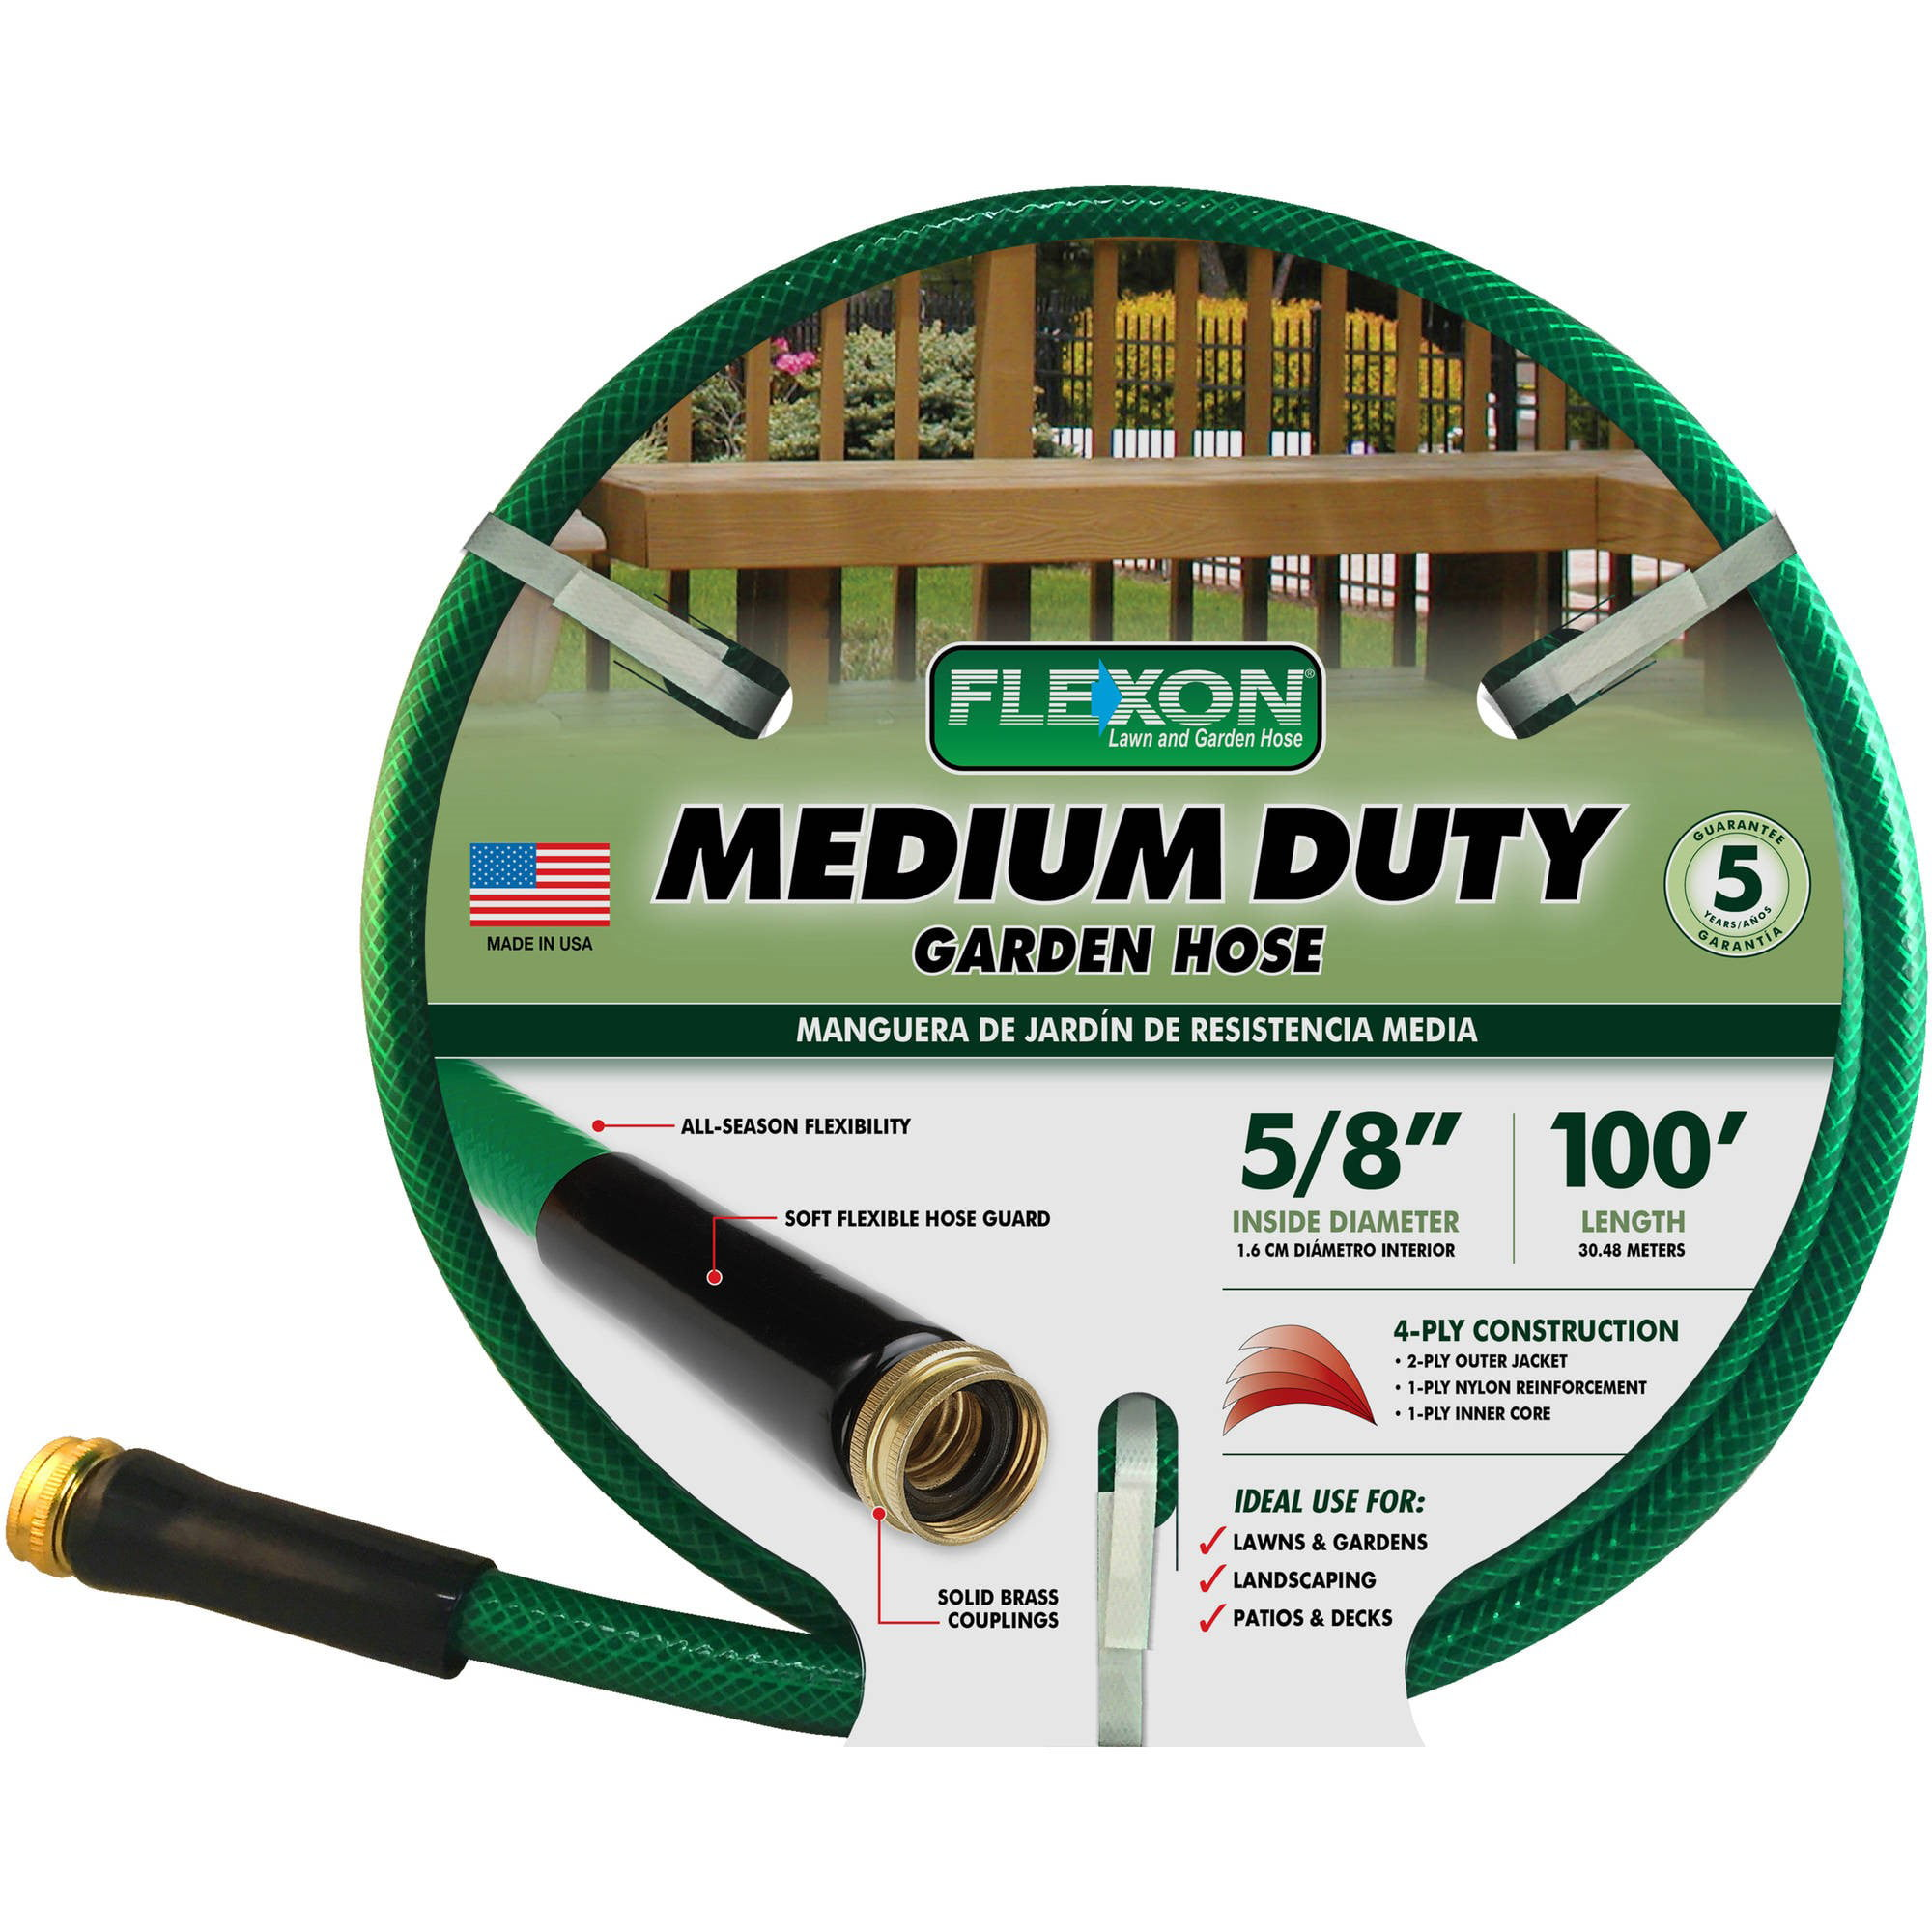 Flexon 100' Medium-Duty Garden Hose, Green by Flexon Industries